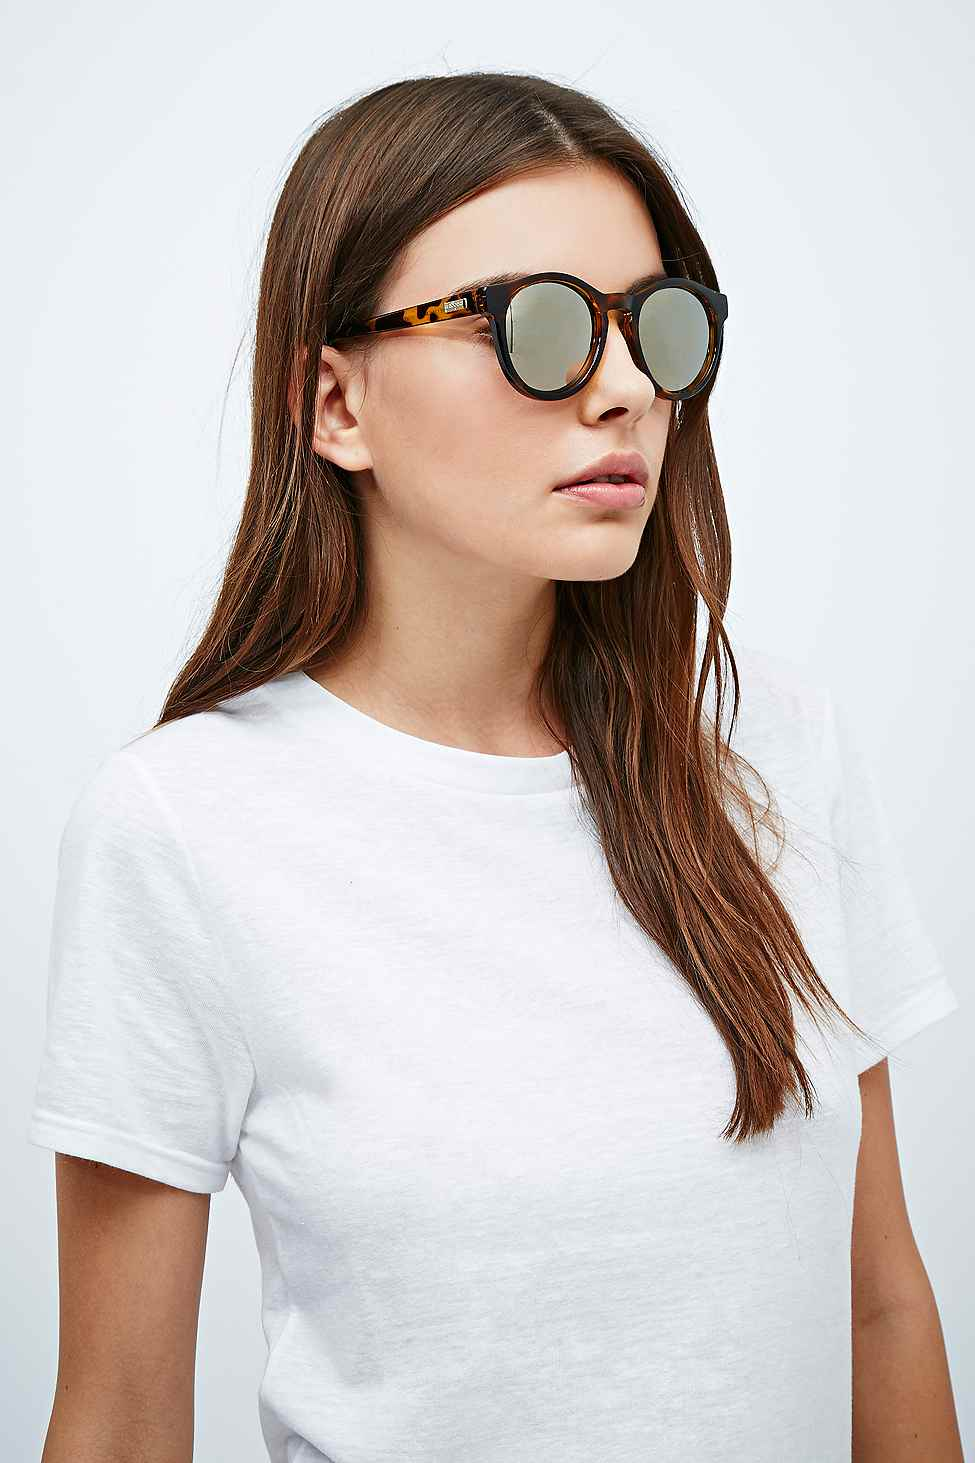 Le Specs Hey Macarena Mirror Lens Sunglasses In Tortoiseshell in Brown